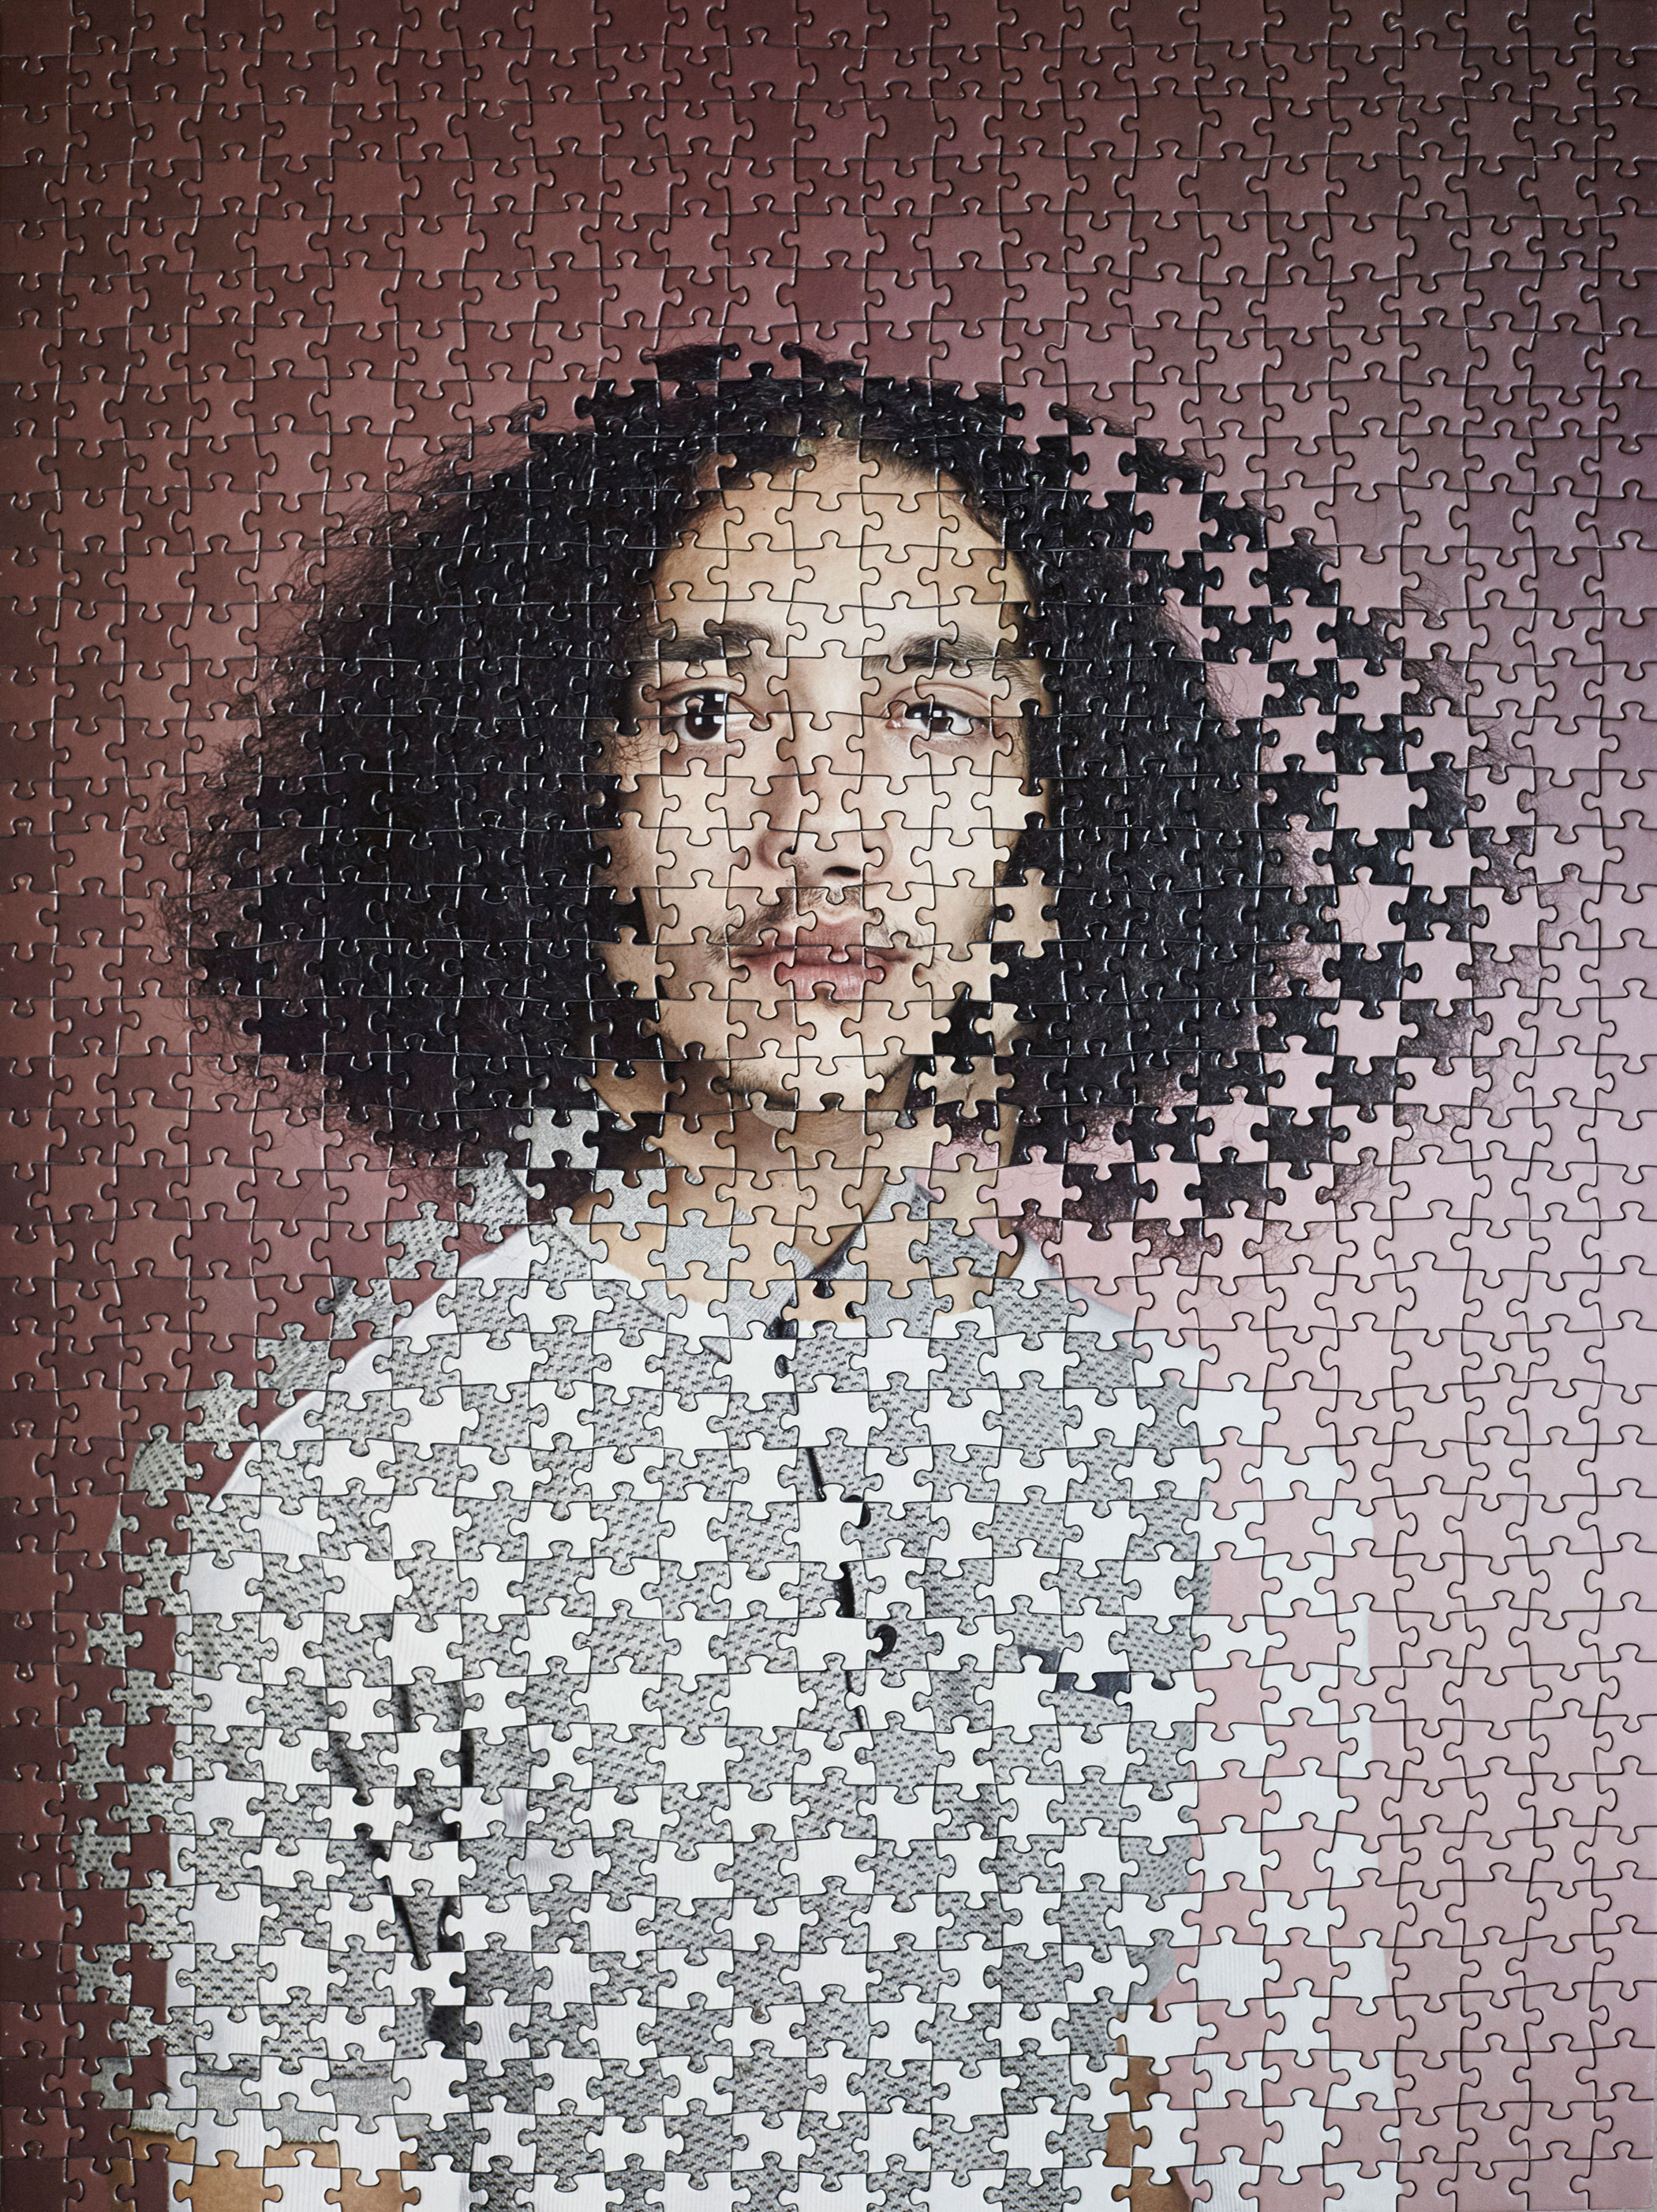 Alma Haser,  Lee and Clinton (1) , 2017  Digital pigment print puzzle (1000 pieces), 63.9 x 47.7 cm (approx. 25 x 19 in), edition of 6   Inquire